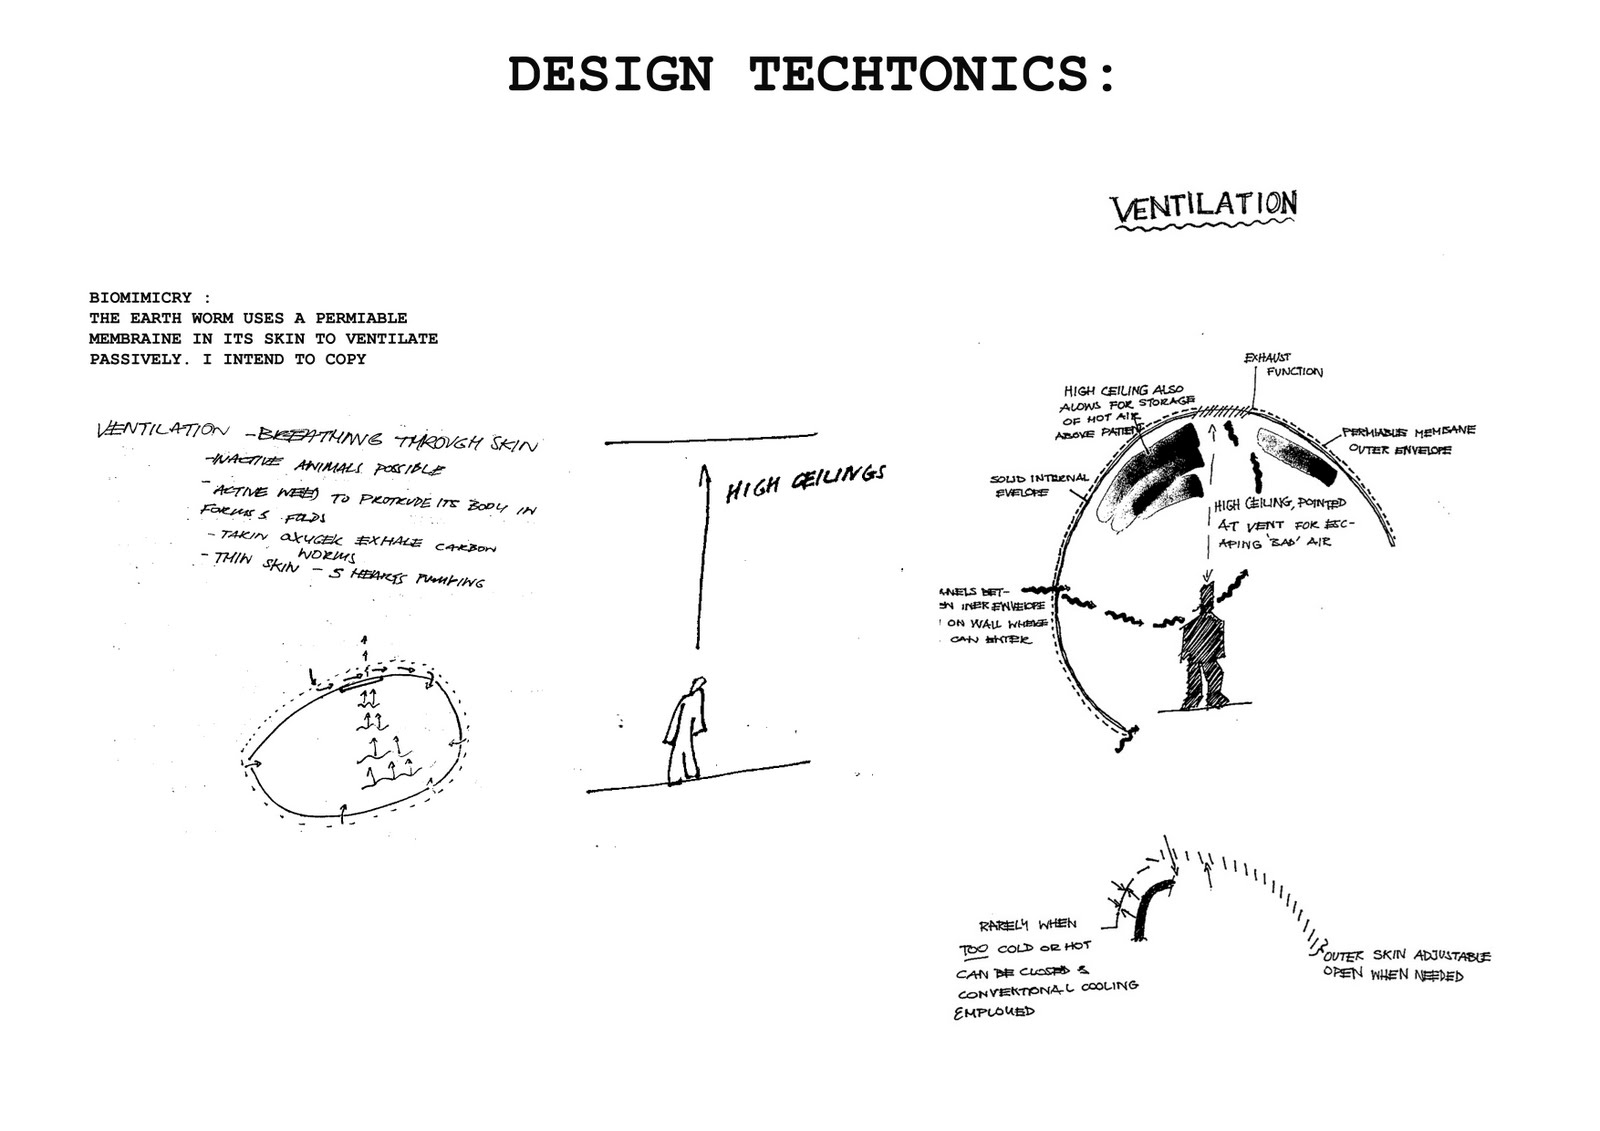 Architectural design 5 techtonic issues for Architectural design issues